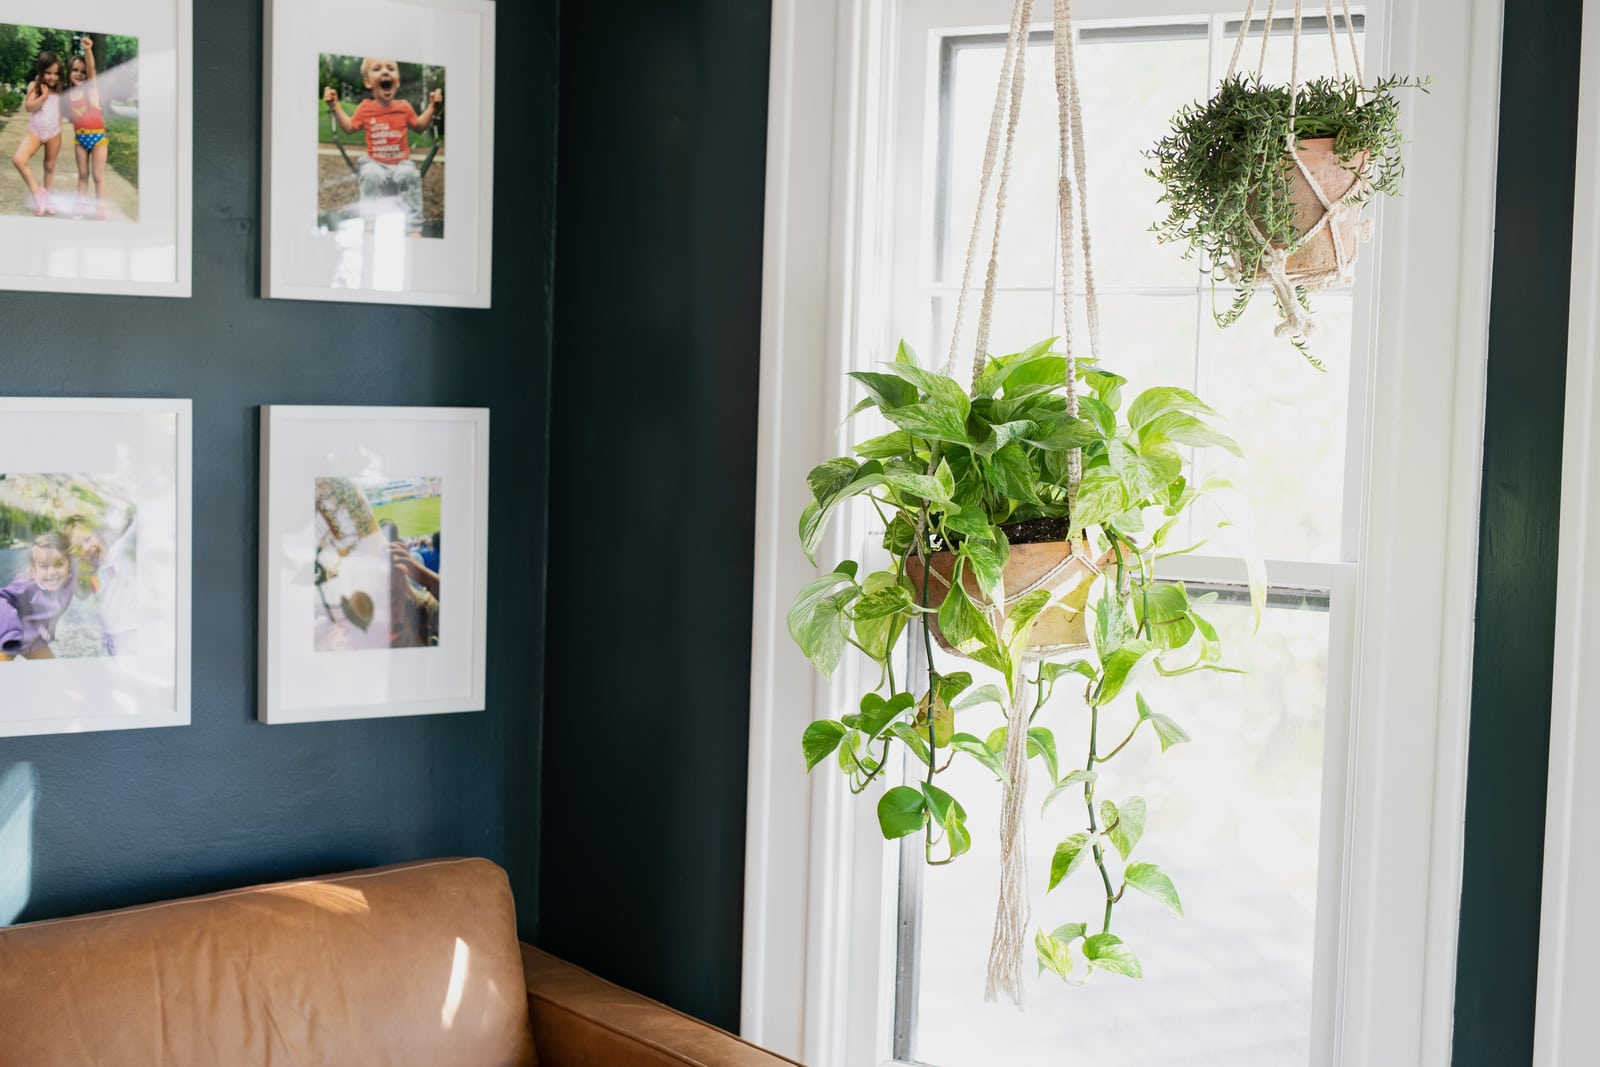 A bedroom to office conversion with plants and family photos